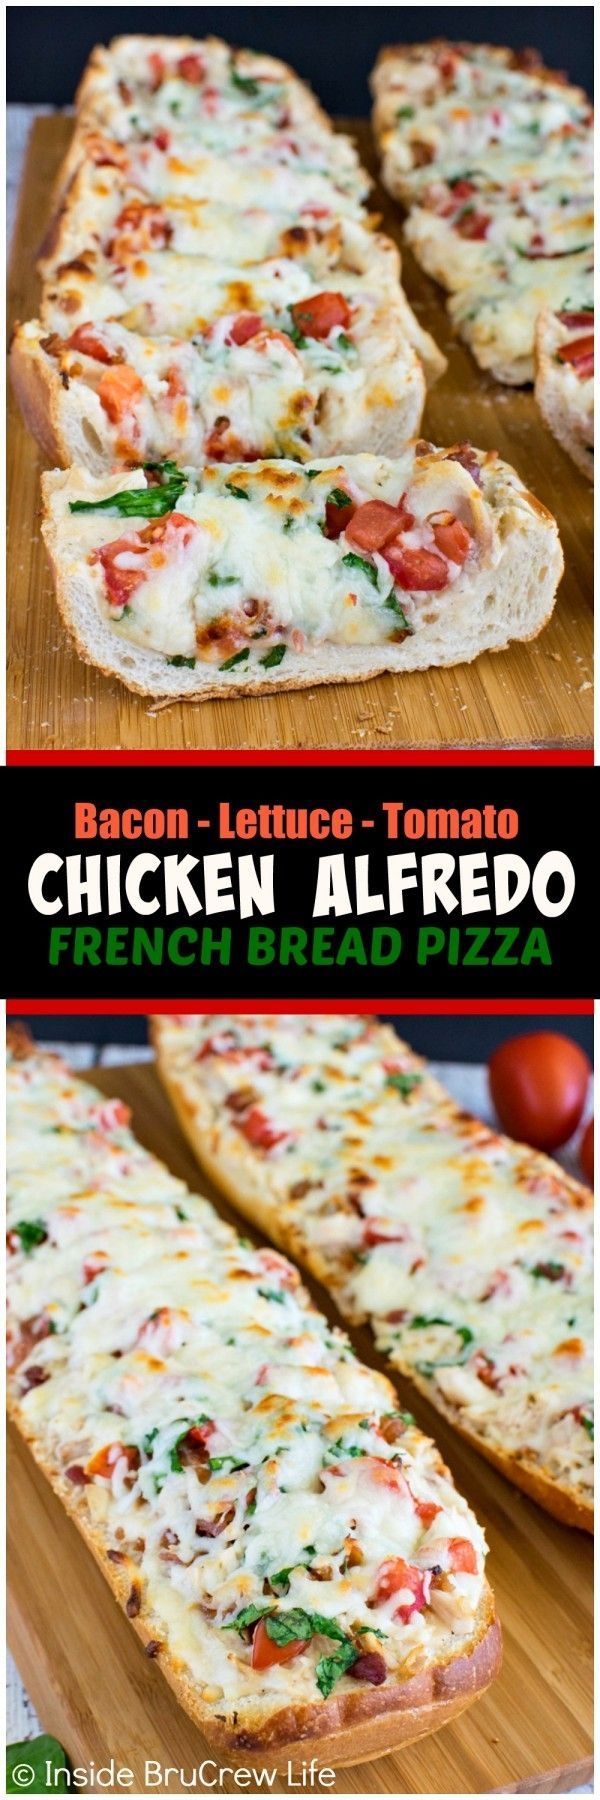 BLT Chicken Alfredo French Bread Pizza - this easy pizza is loaded with meat, veggies, and cheese. Awesome dinner recipe for busy nights! by corina